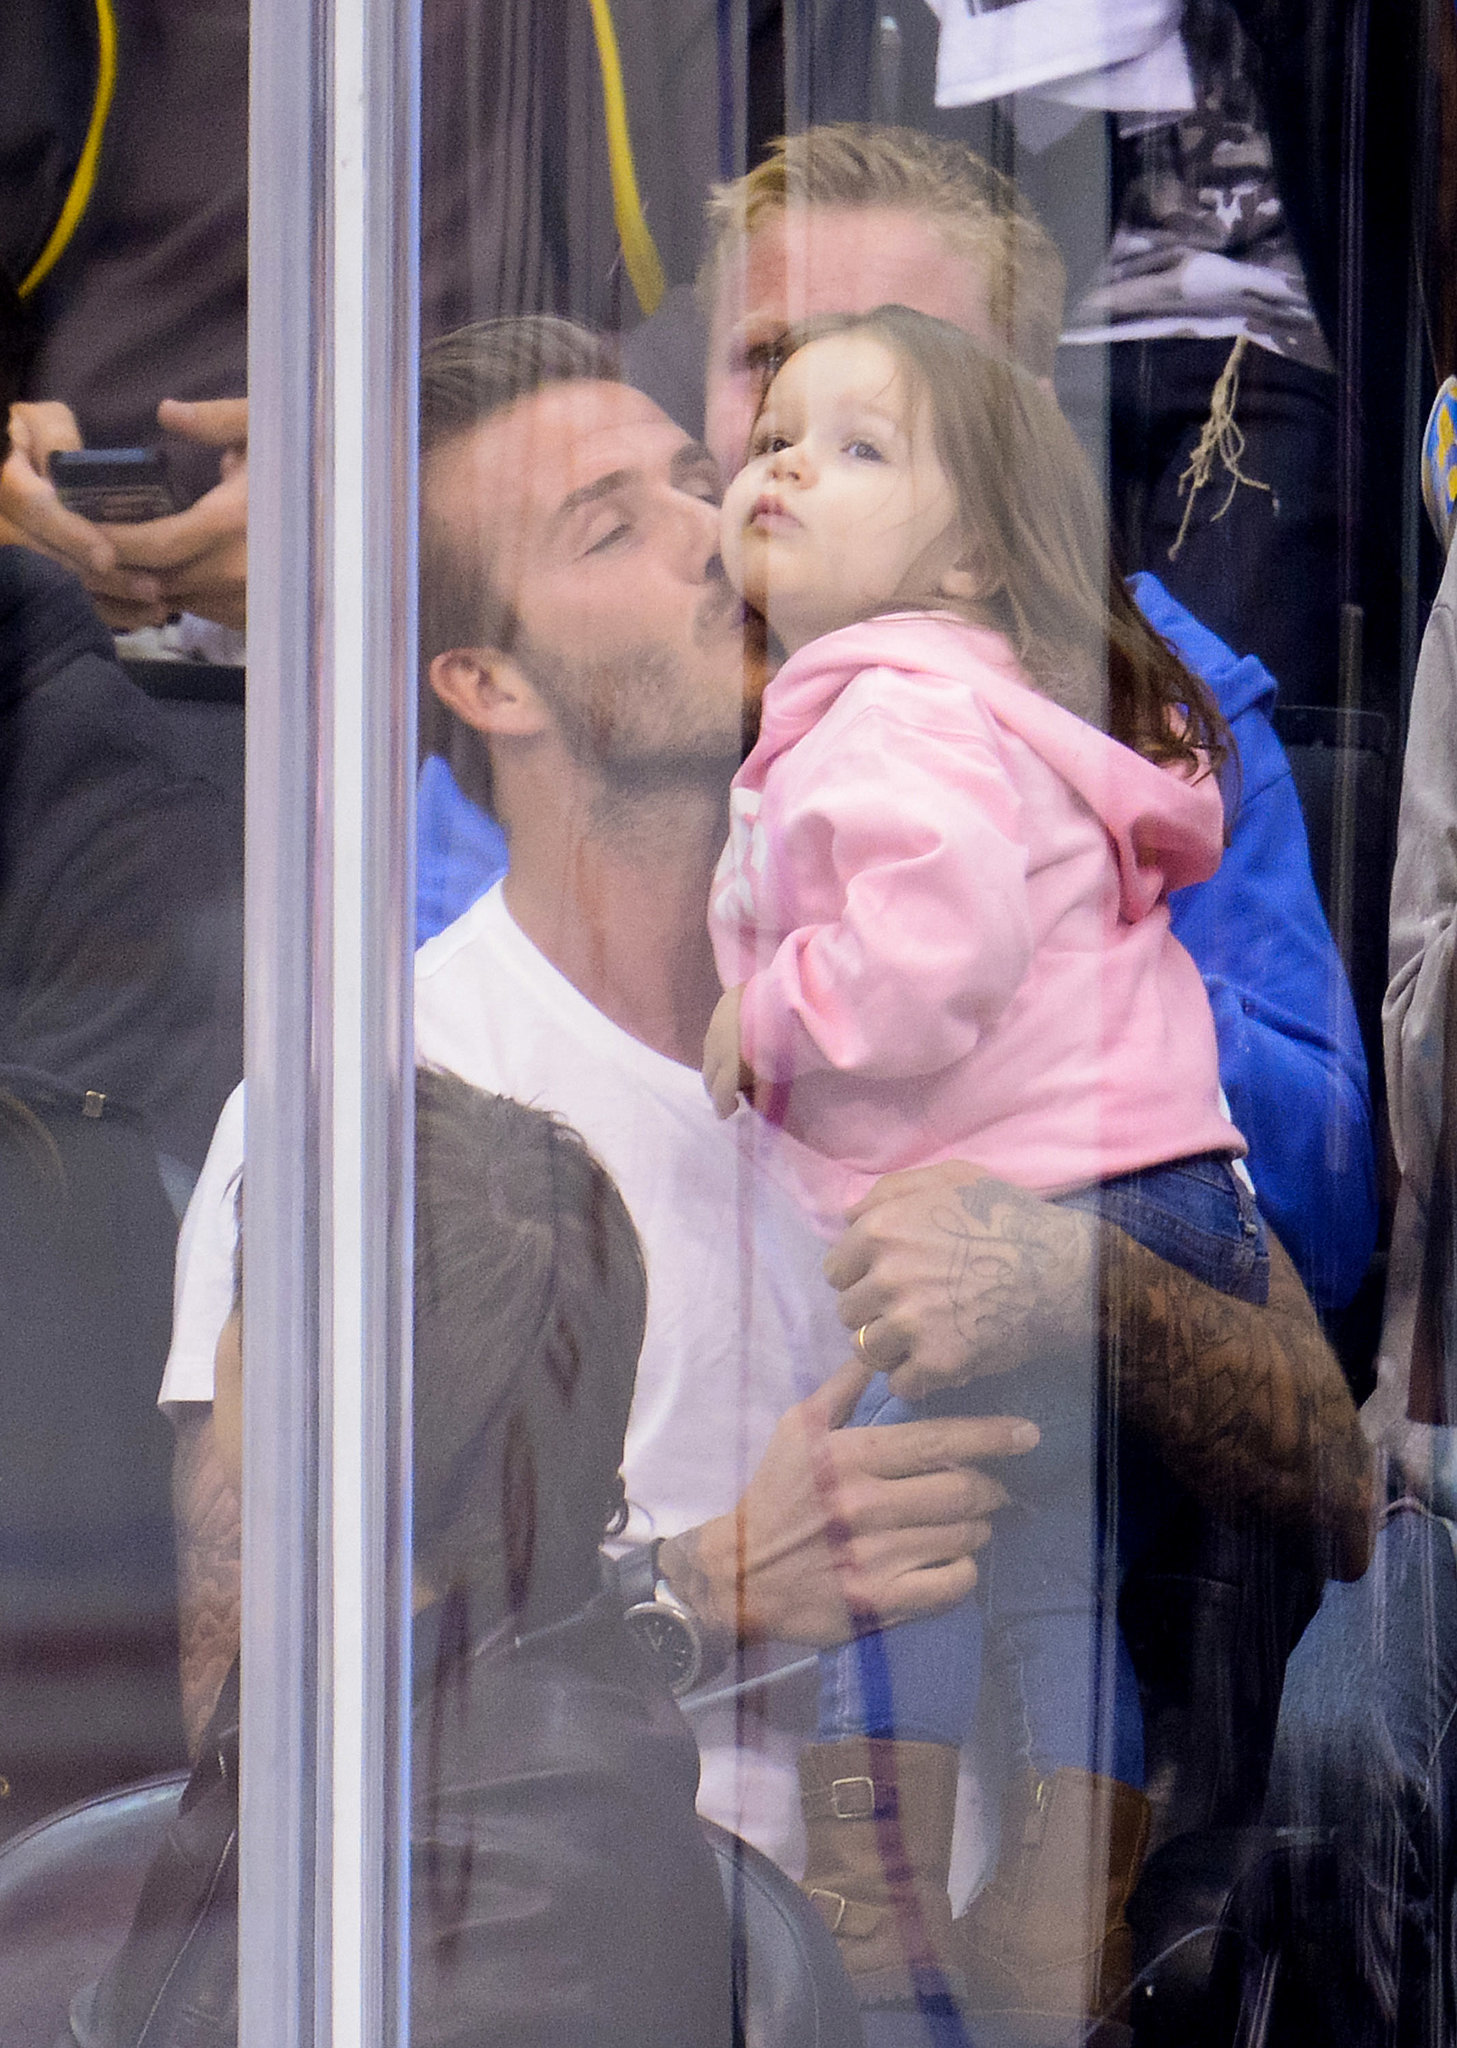 David Beckham gave Harper a kiss when they were put on the Kiss Cam at a Kings hockey game in LA.